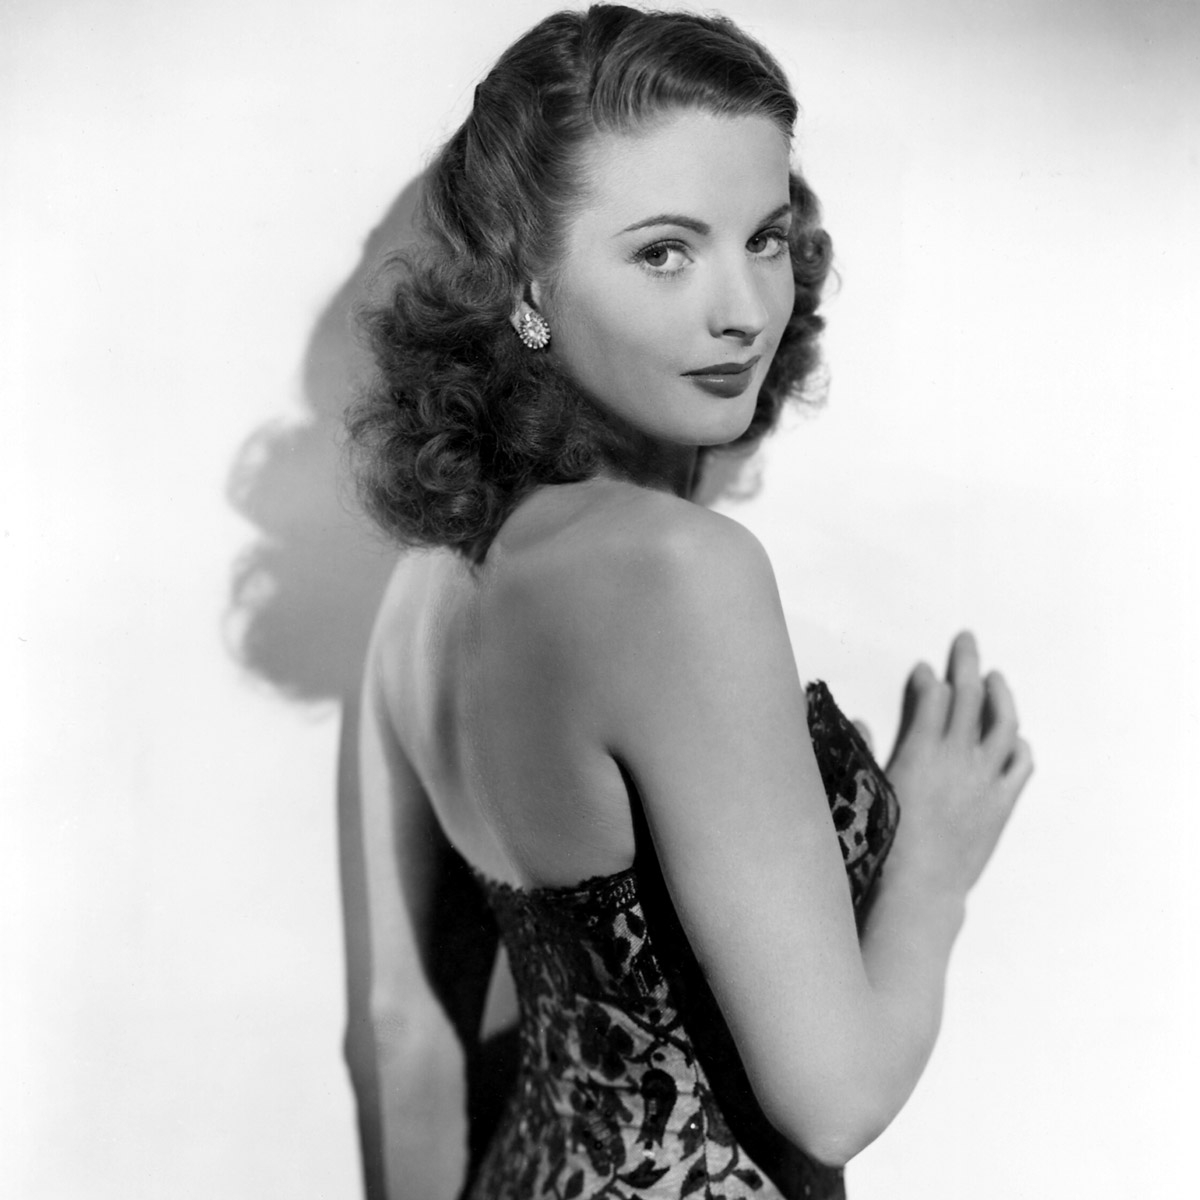 Coleen Gray nudes (78 photo), Tits, Cleavage, Twitter, see through 2020